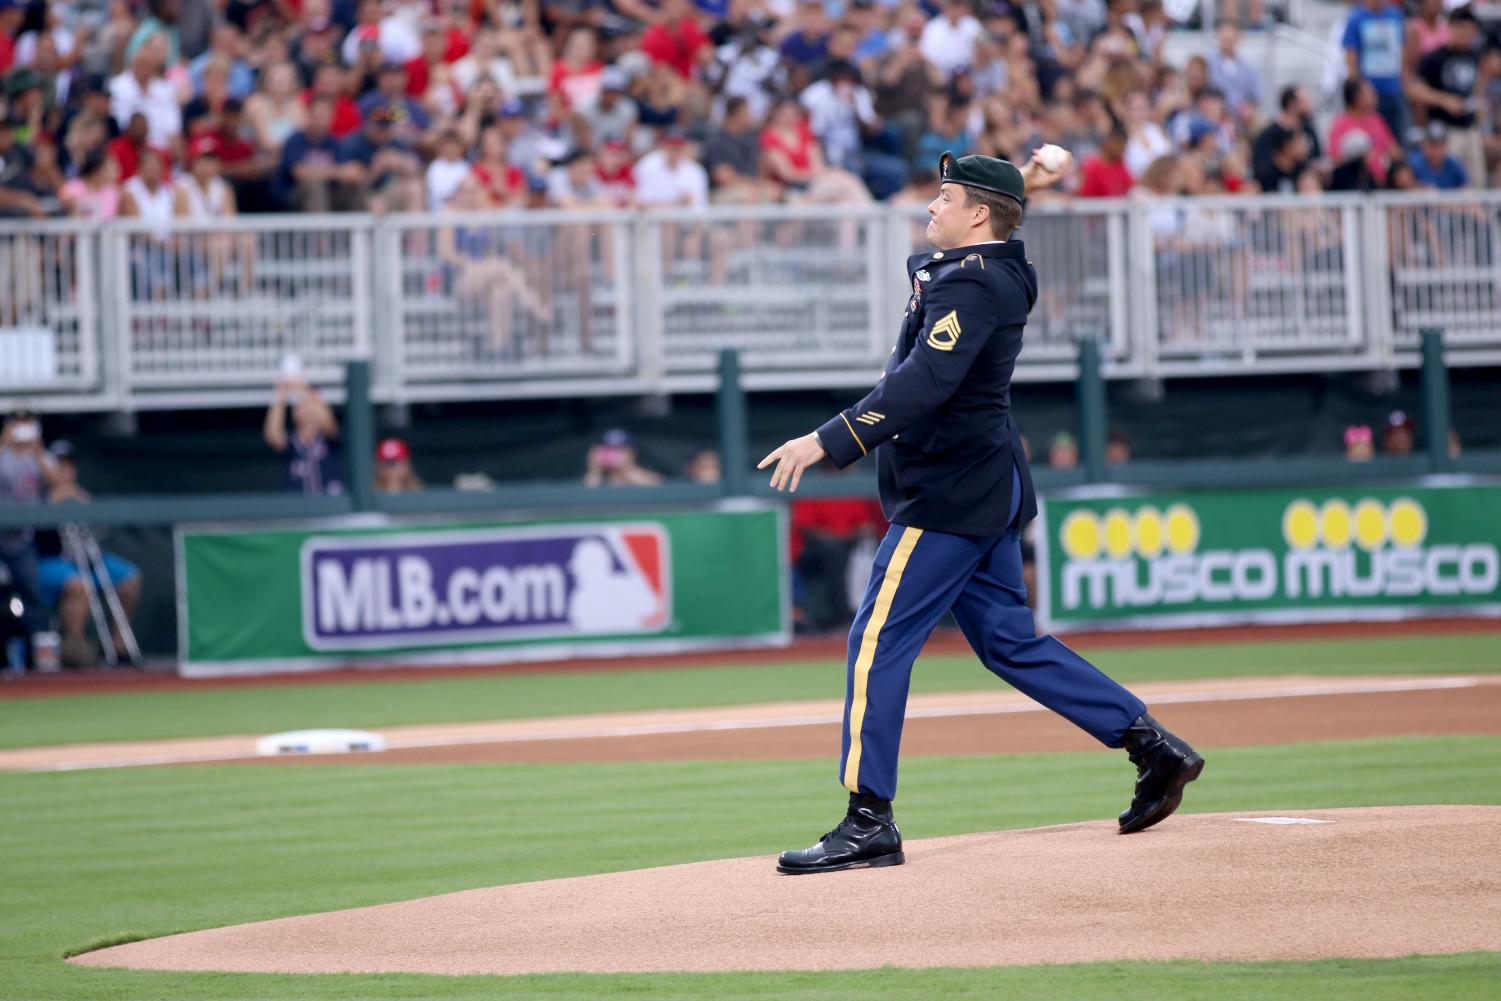 Seen here is a moment captured from the first pitch thrown out from the first MLB game played at Fort Bragg.